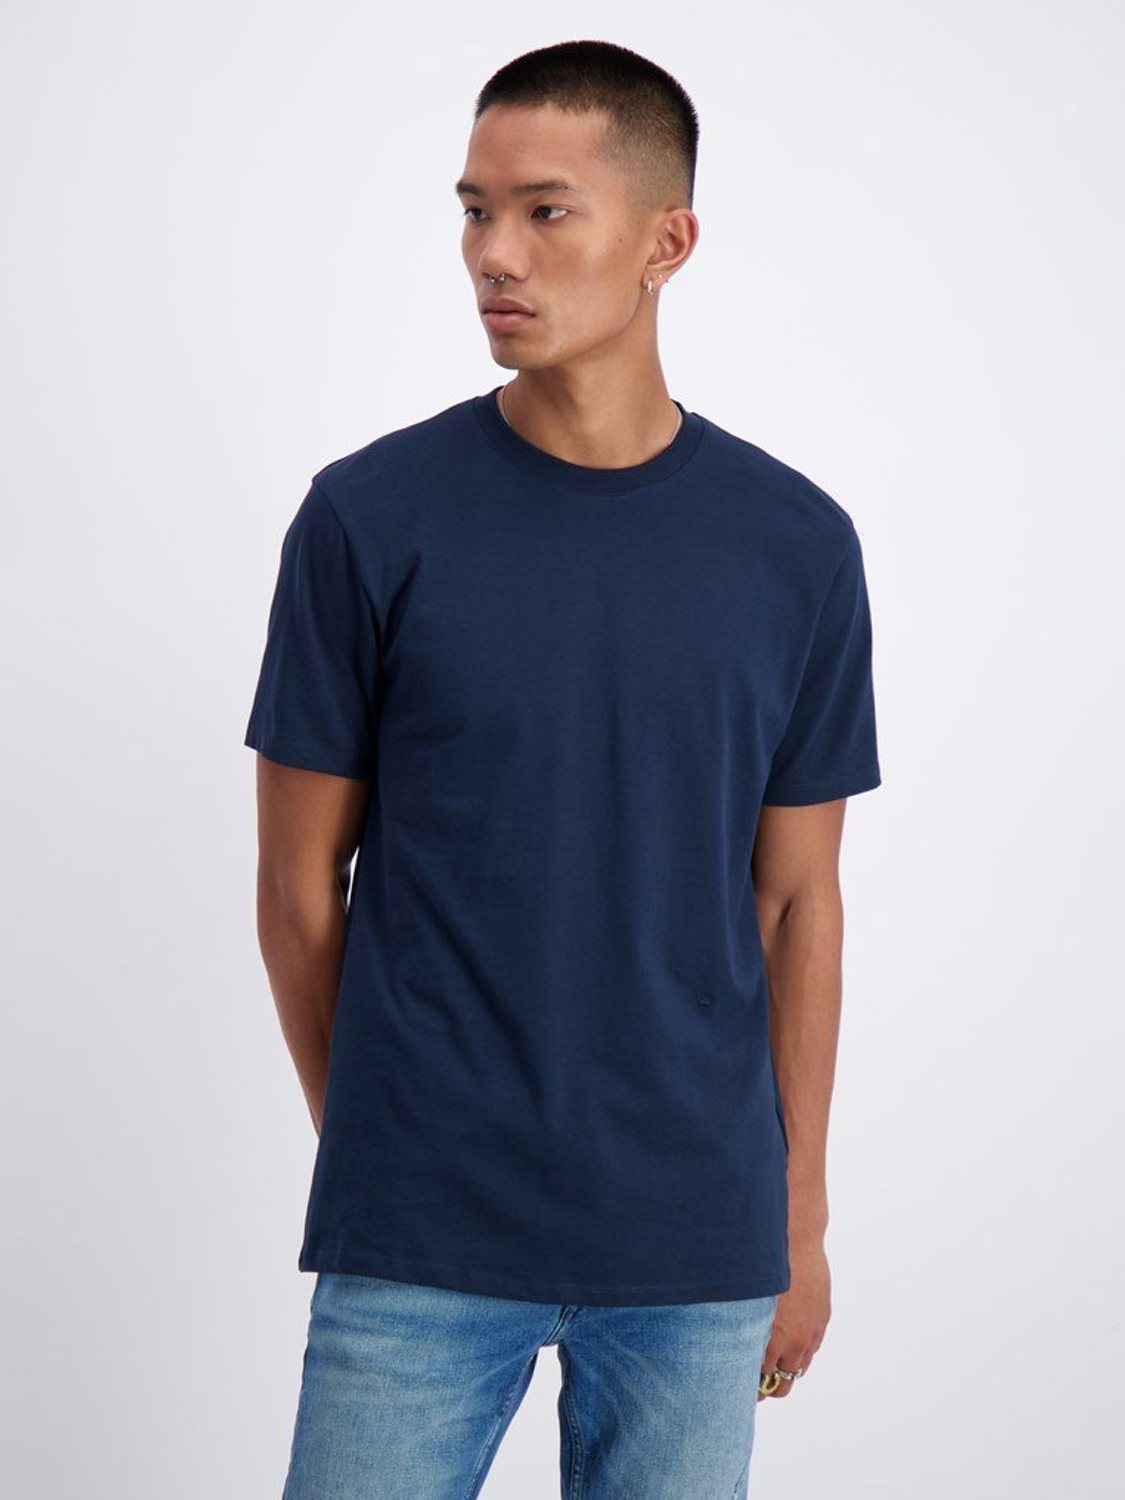 Junk De Luxe - Basis T-Shirt Navy | GATE 36 Hobro